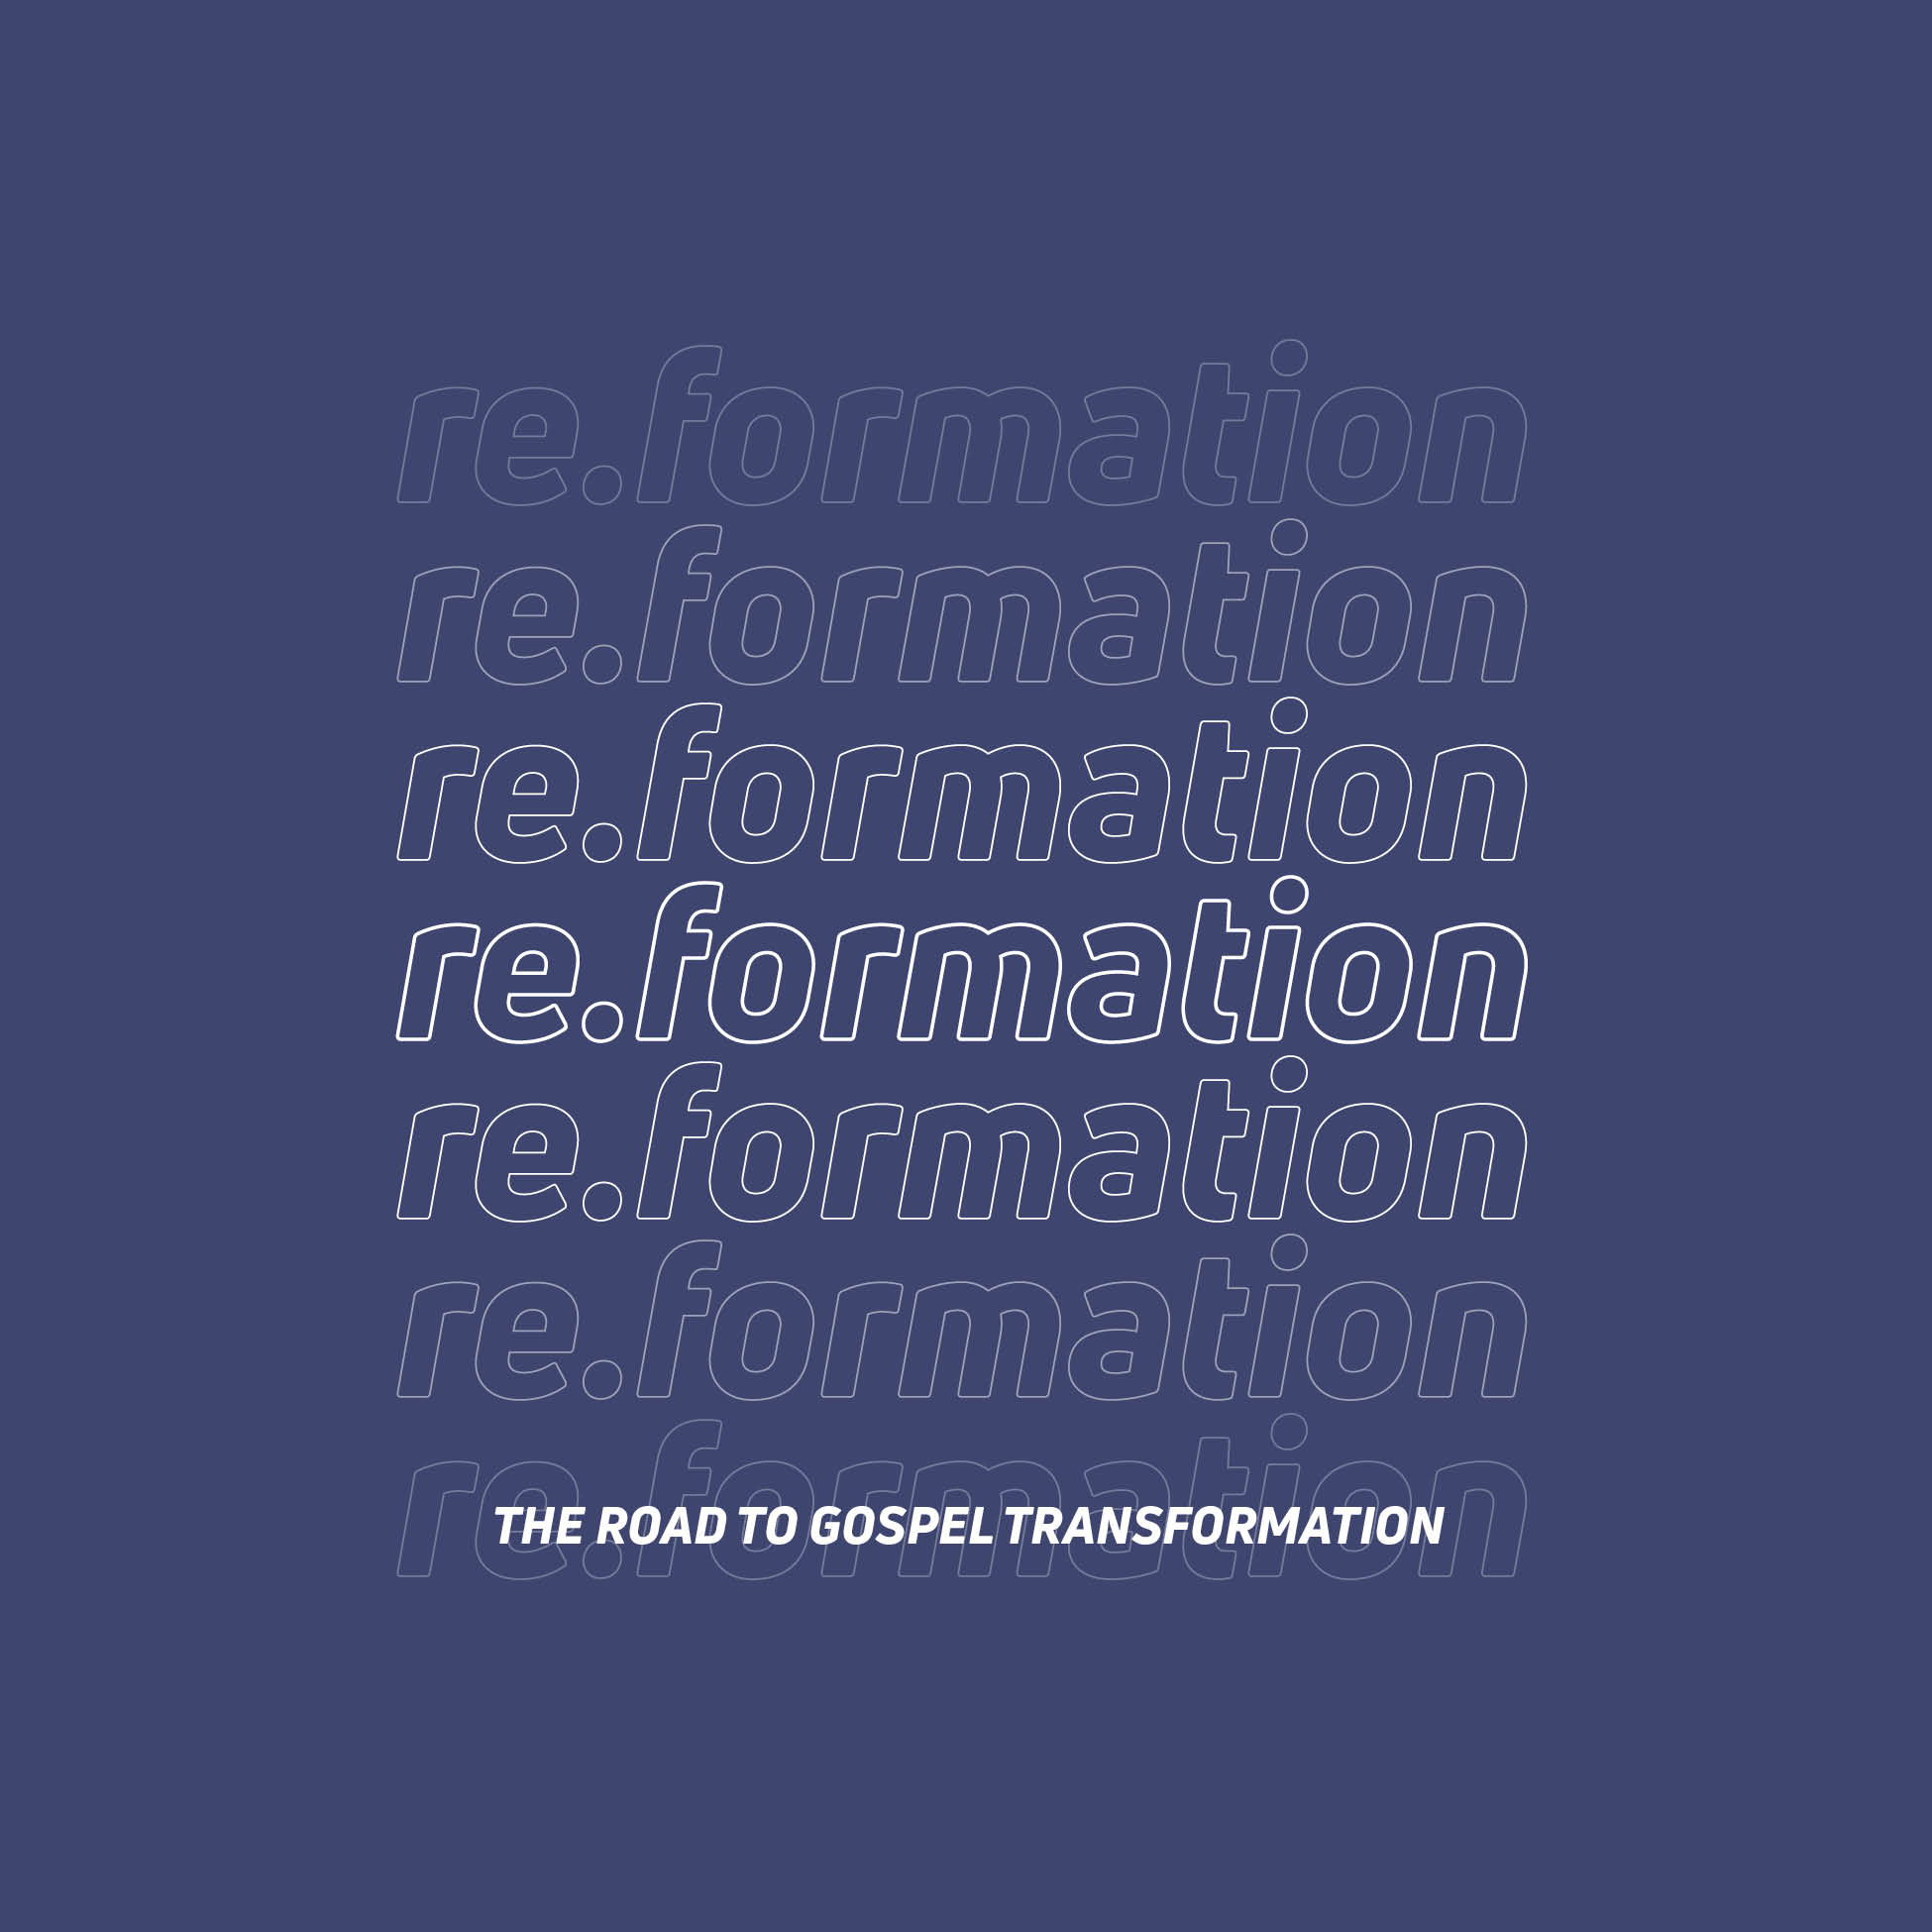 re.formation overview: John 15:1-17 & Romans 12:1-2